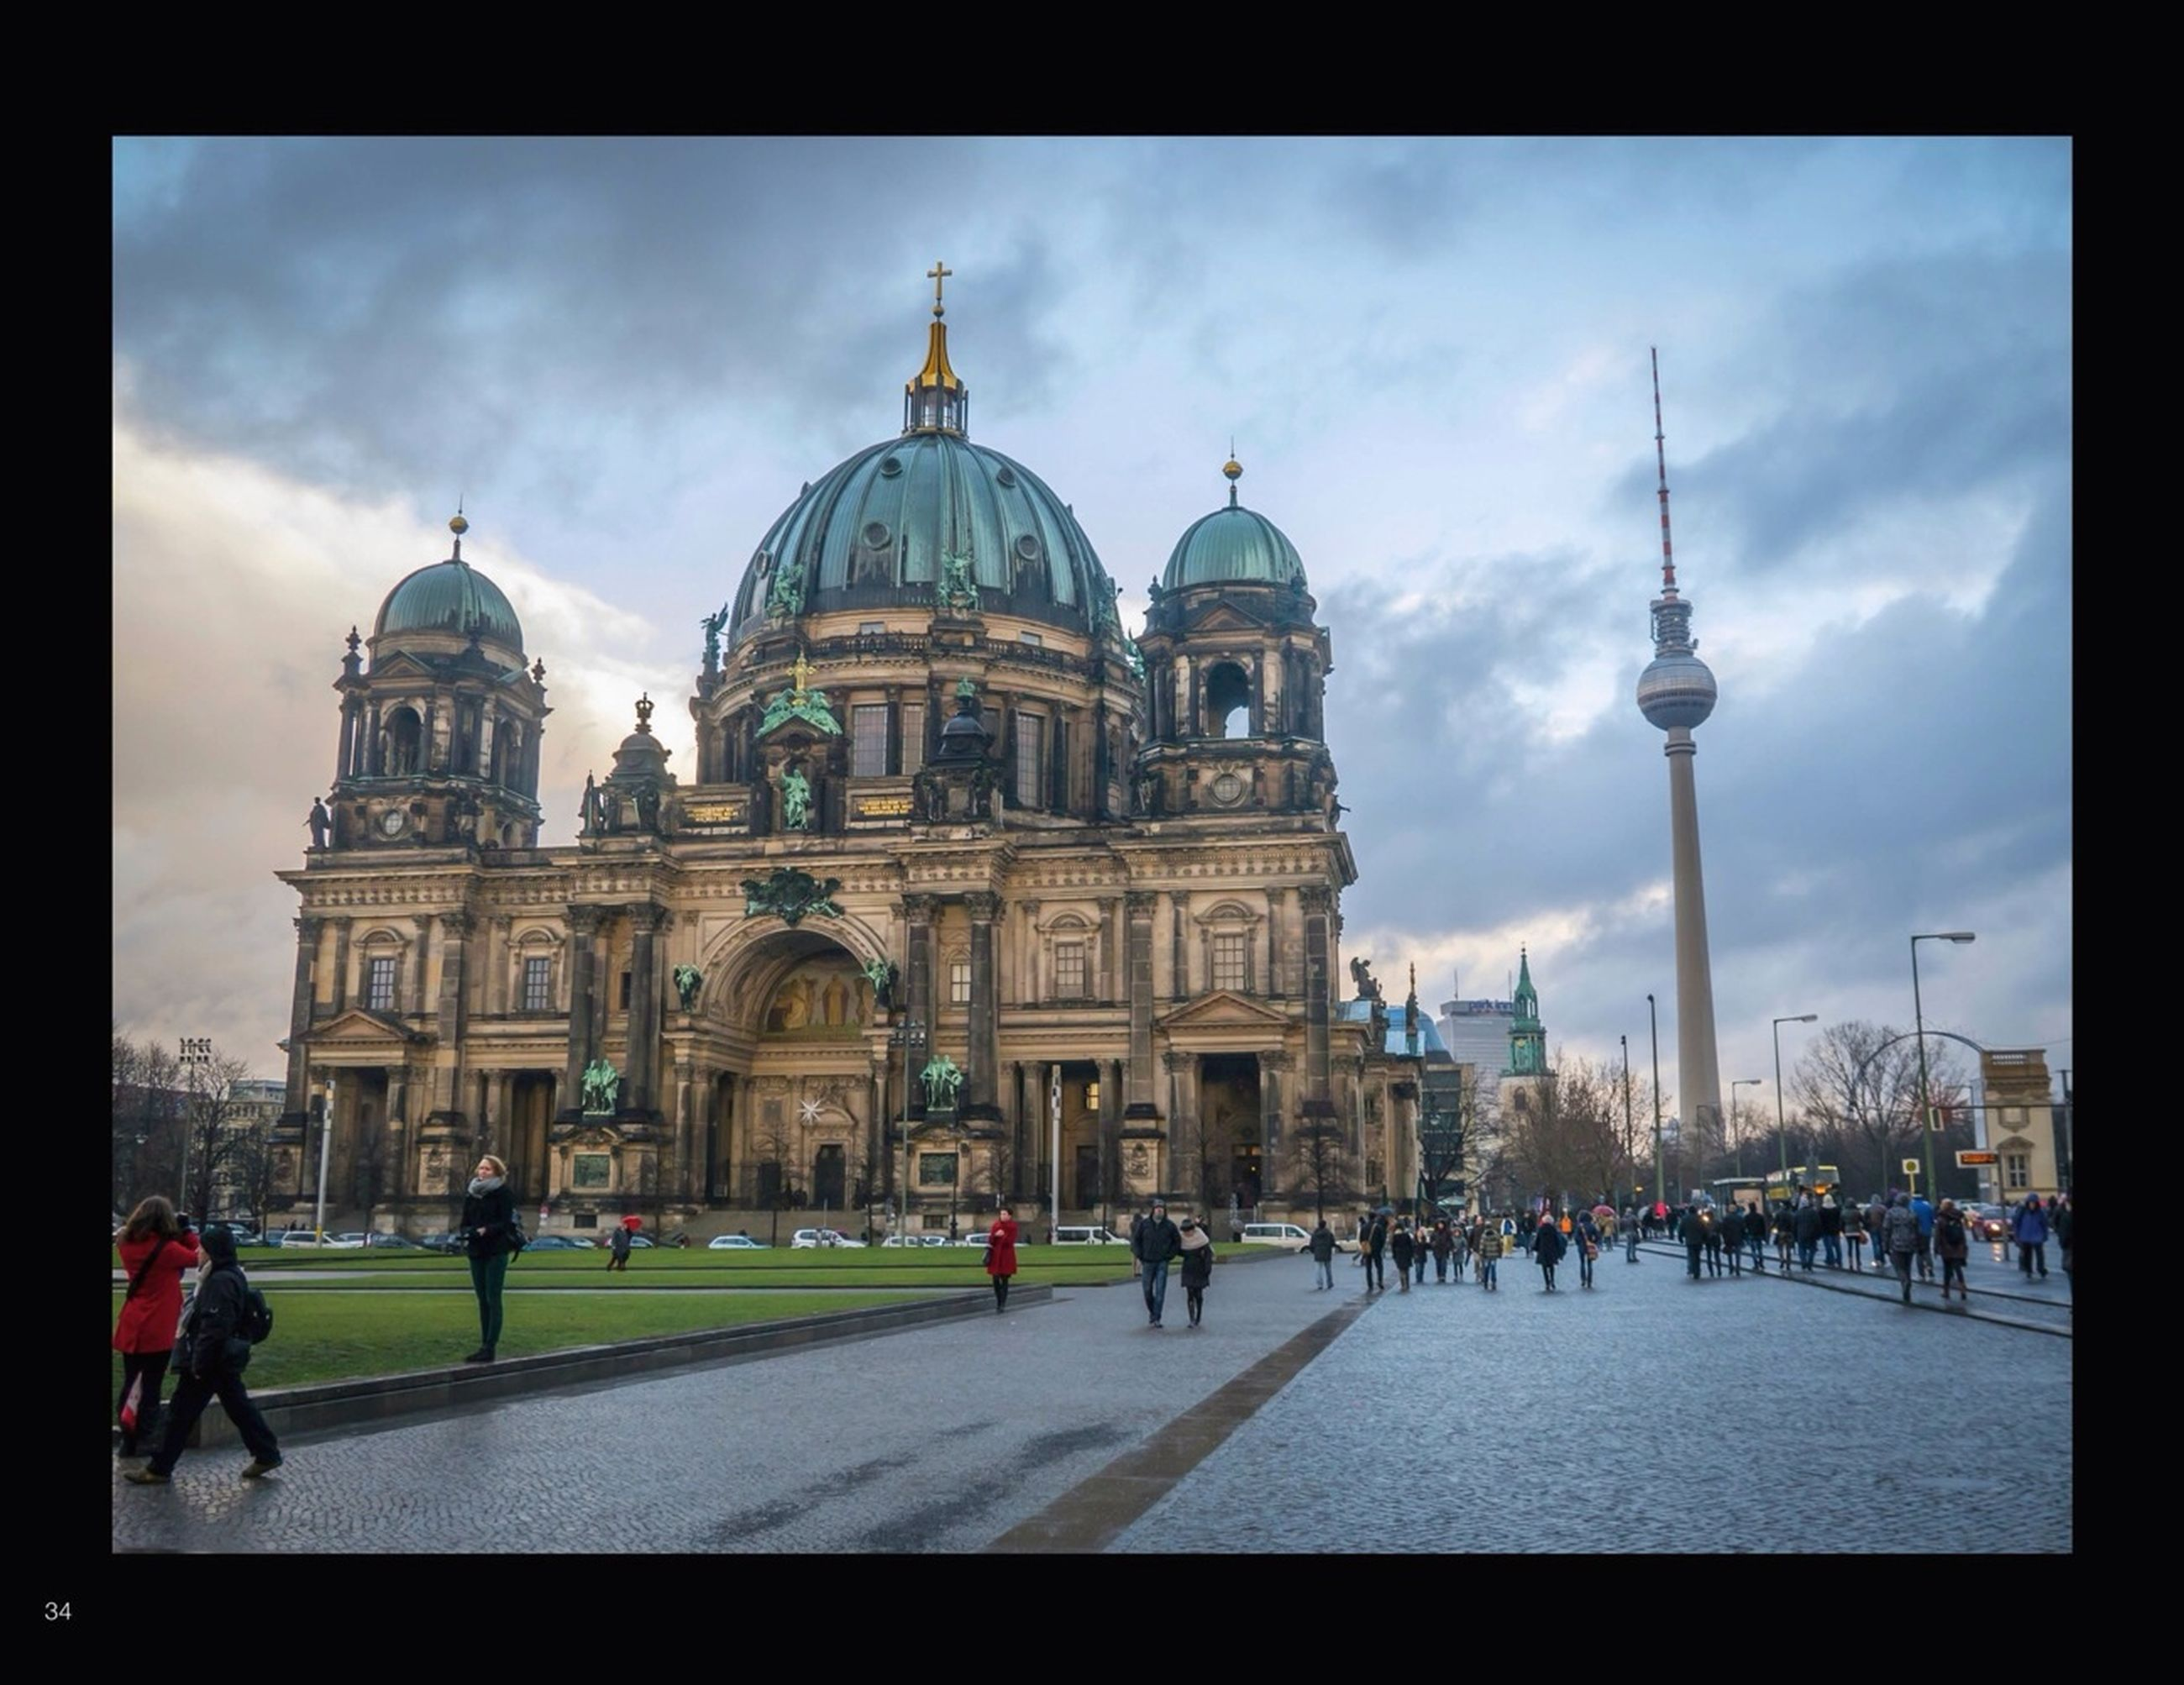 architecture, building exterior, built structure, large group of people, famous place, place of worship, dome, religion, travel destinations, international landmark, tourism, spirituality, cathedral, travel, church, capital cities, sky